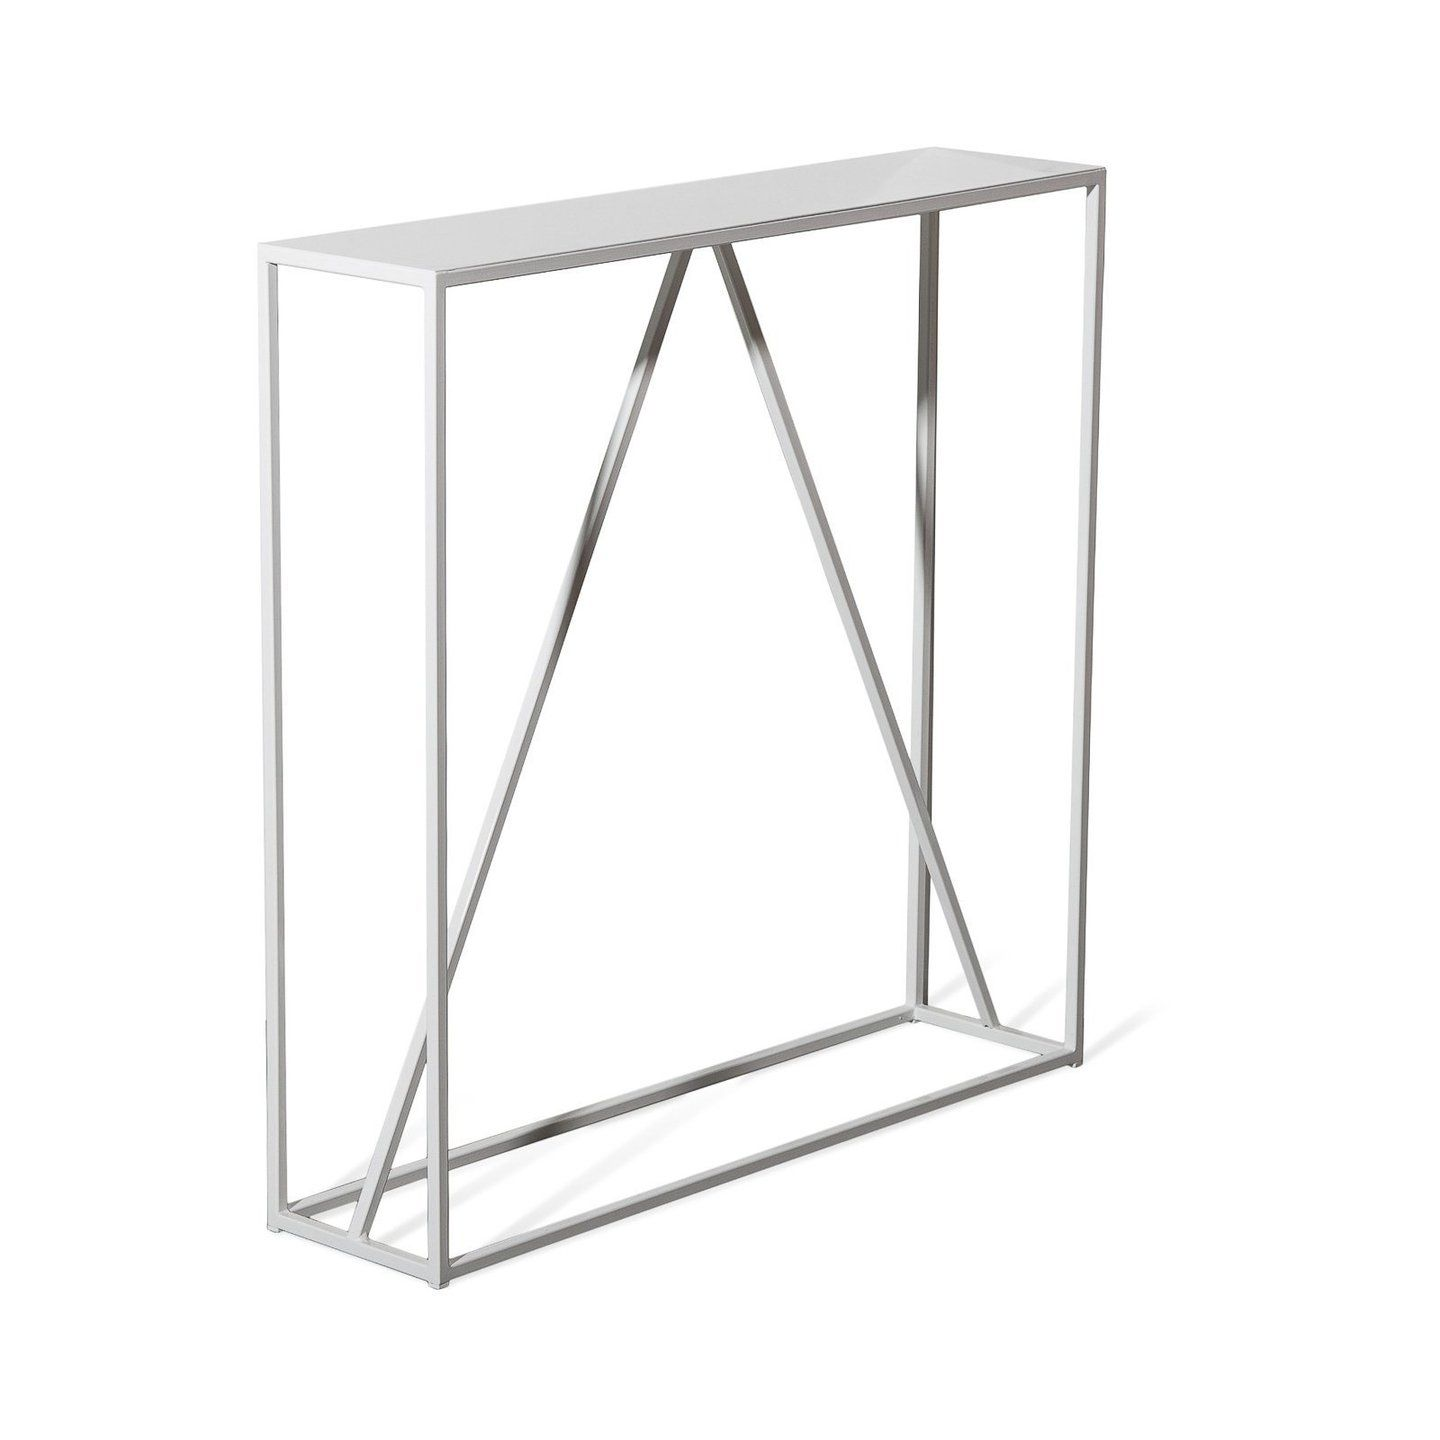 Storage Console Table Hilicus White Console By Patrick Cain Designs 575 Sideboard Console Table Steel Table Table